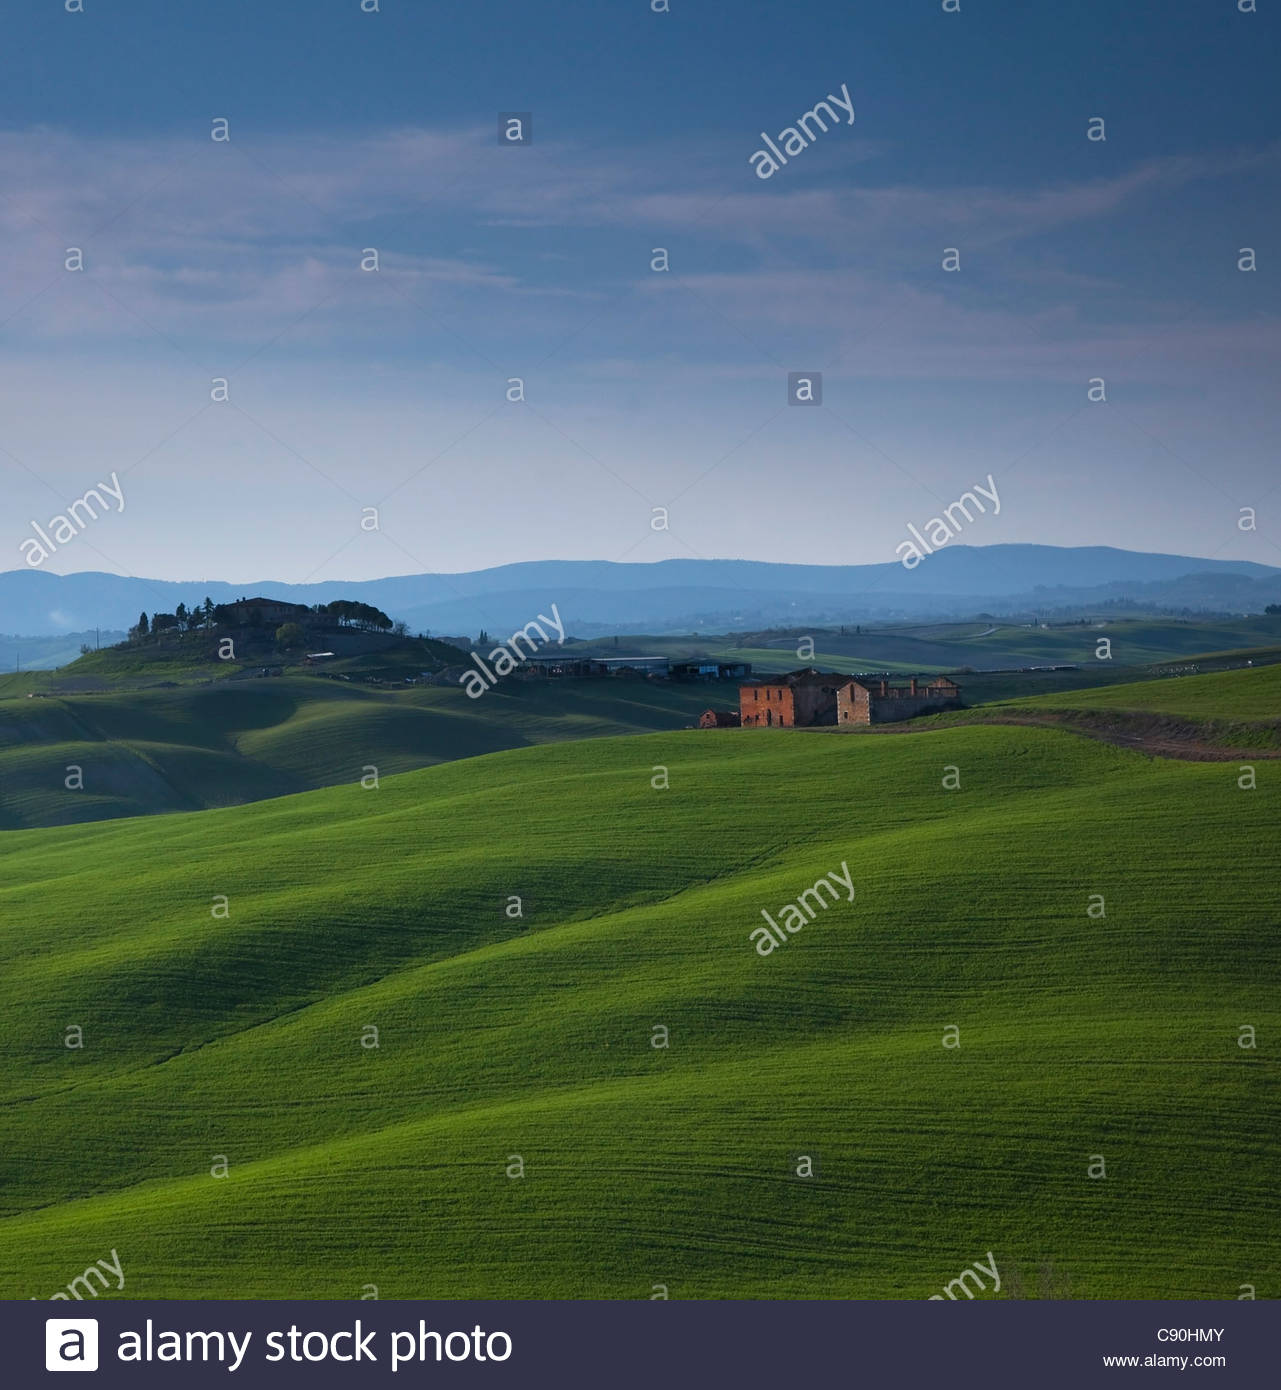 View of rural landscape and farmhouse - Stock Image